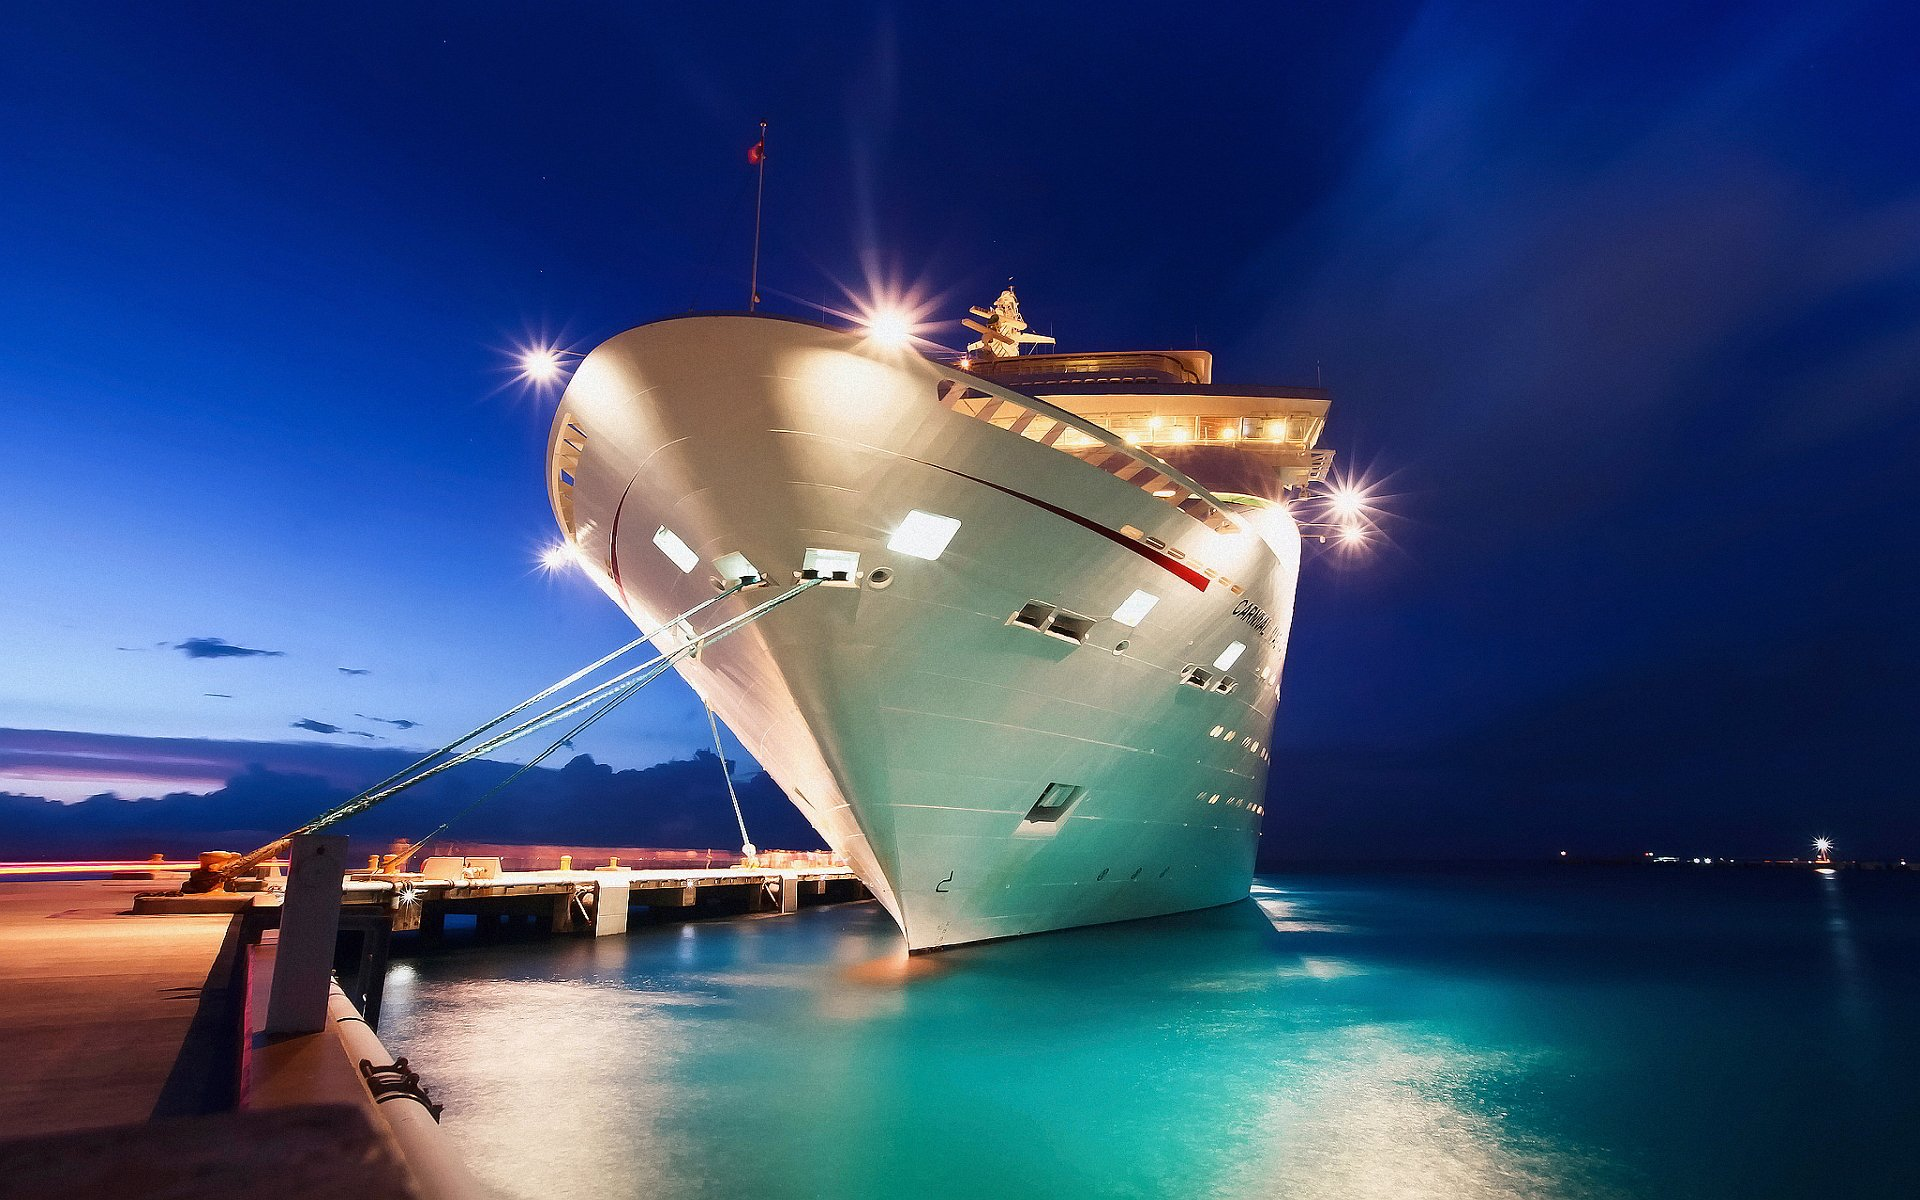 Cruise ships best wallpapers   My Wallpapers Hub 1920x1200